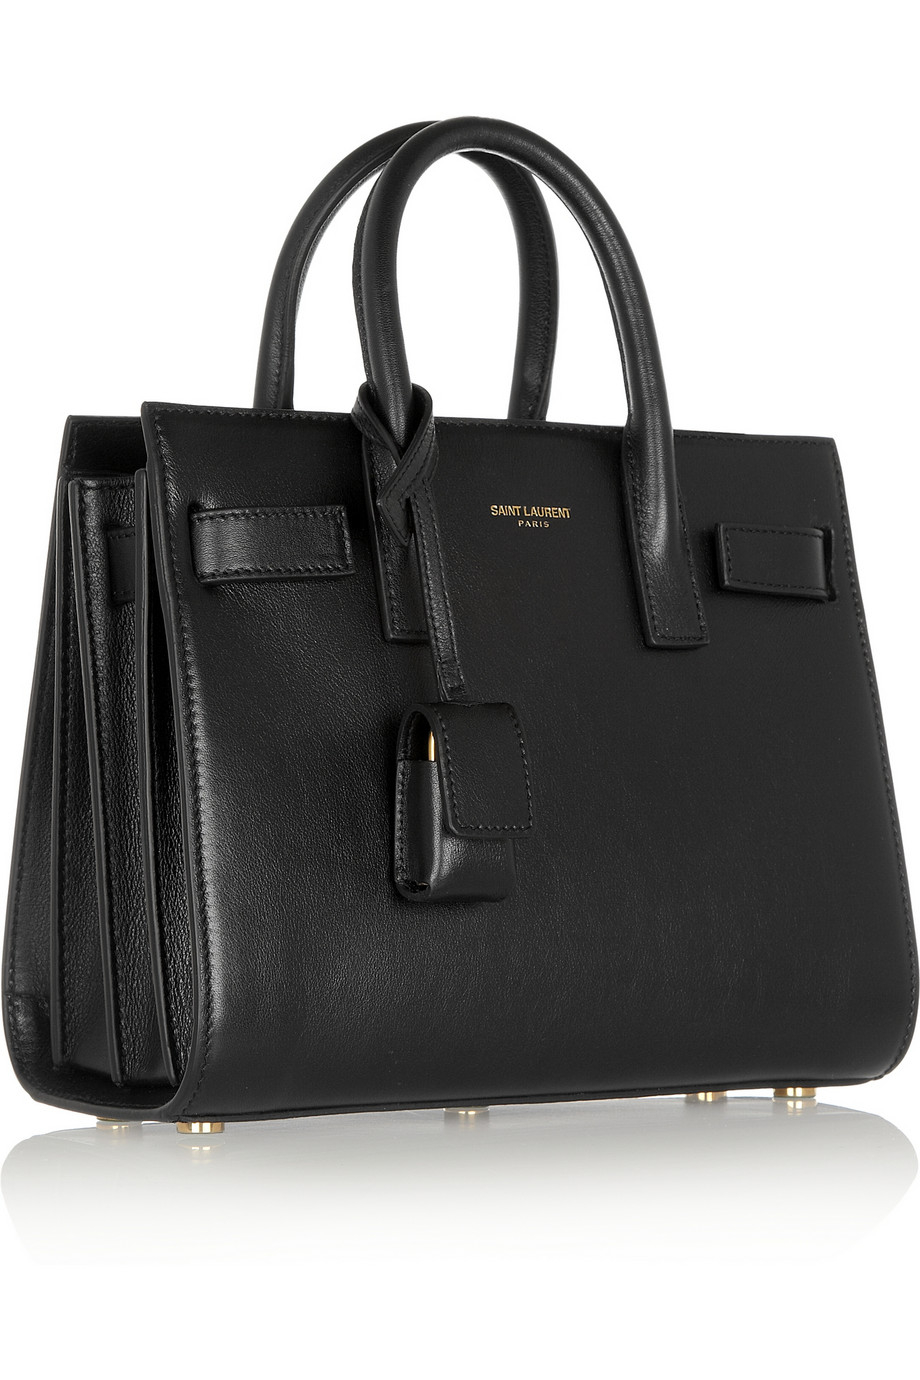 saint laurent sac de jour nano leather tote in black lyst. Black Bedroom Furniture Sets. Home Design Ideas